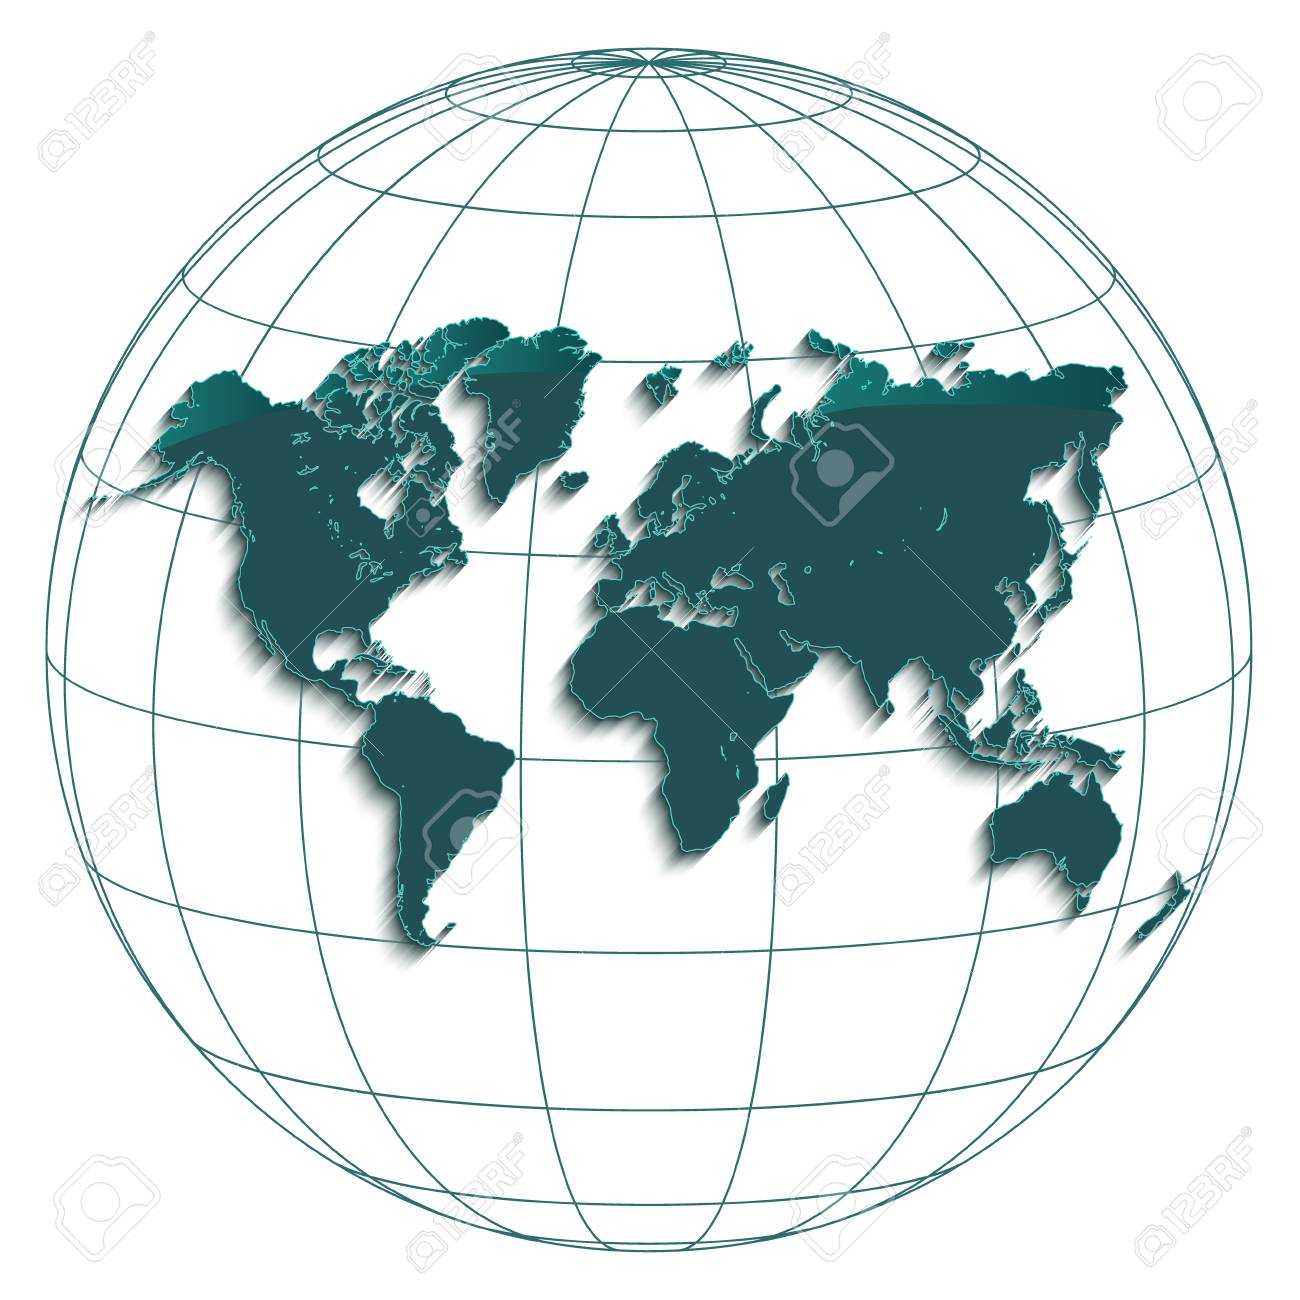 World map globe earth globe geographic coordinates white background vector world map globe earth globe geographic coordinates white background petroleum color vector gumiabroncs Gallery